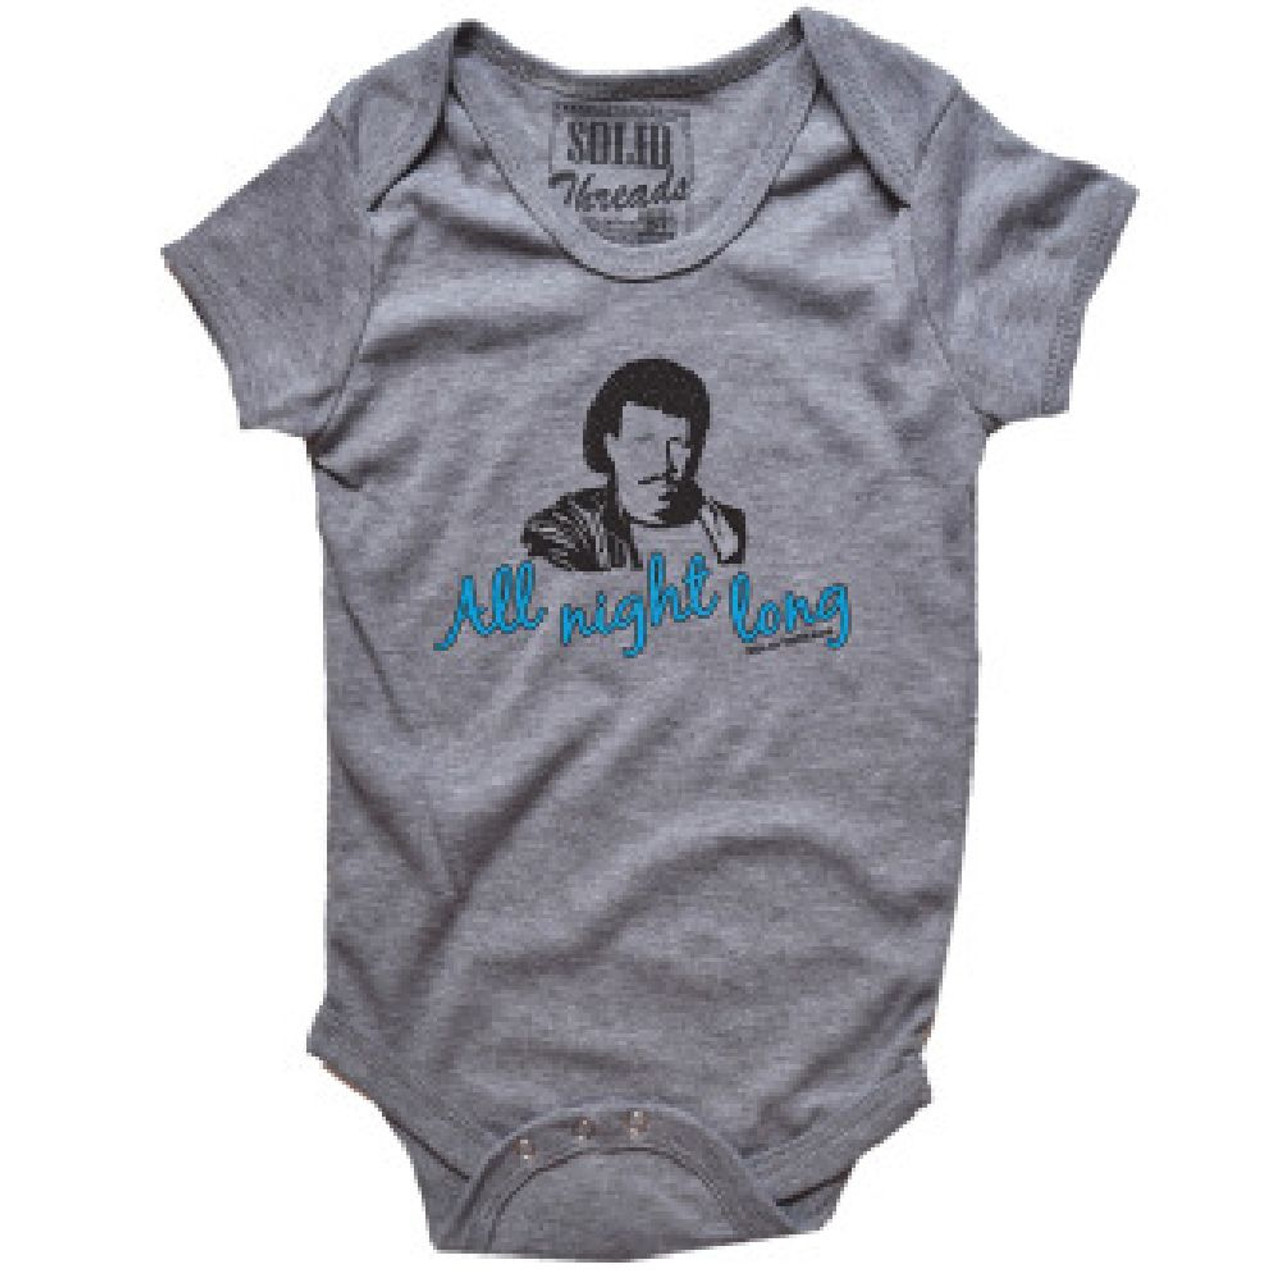 68d970b6 Lionel Richie Baby Bodysuit - All Night Long Song Title. Gray Infant One  Piece Outfit